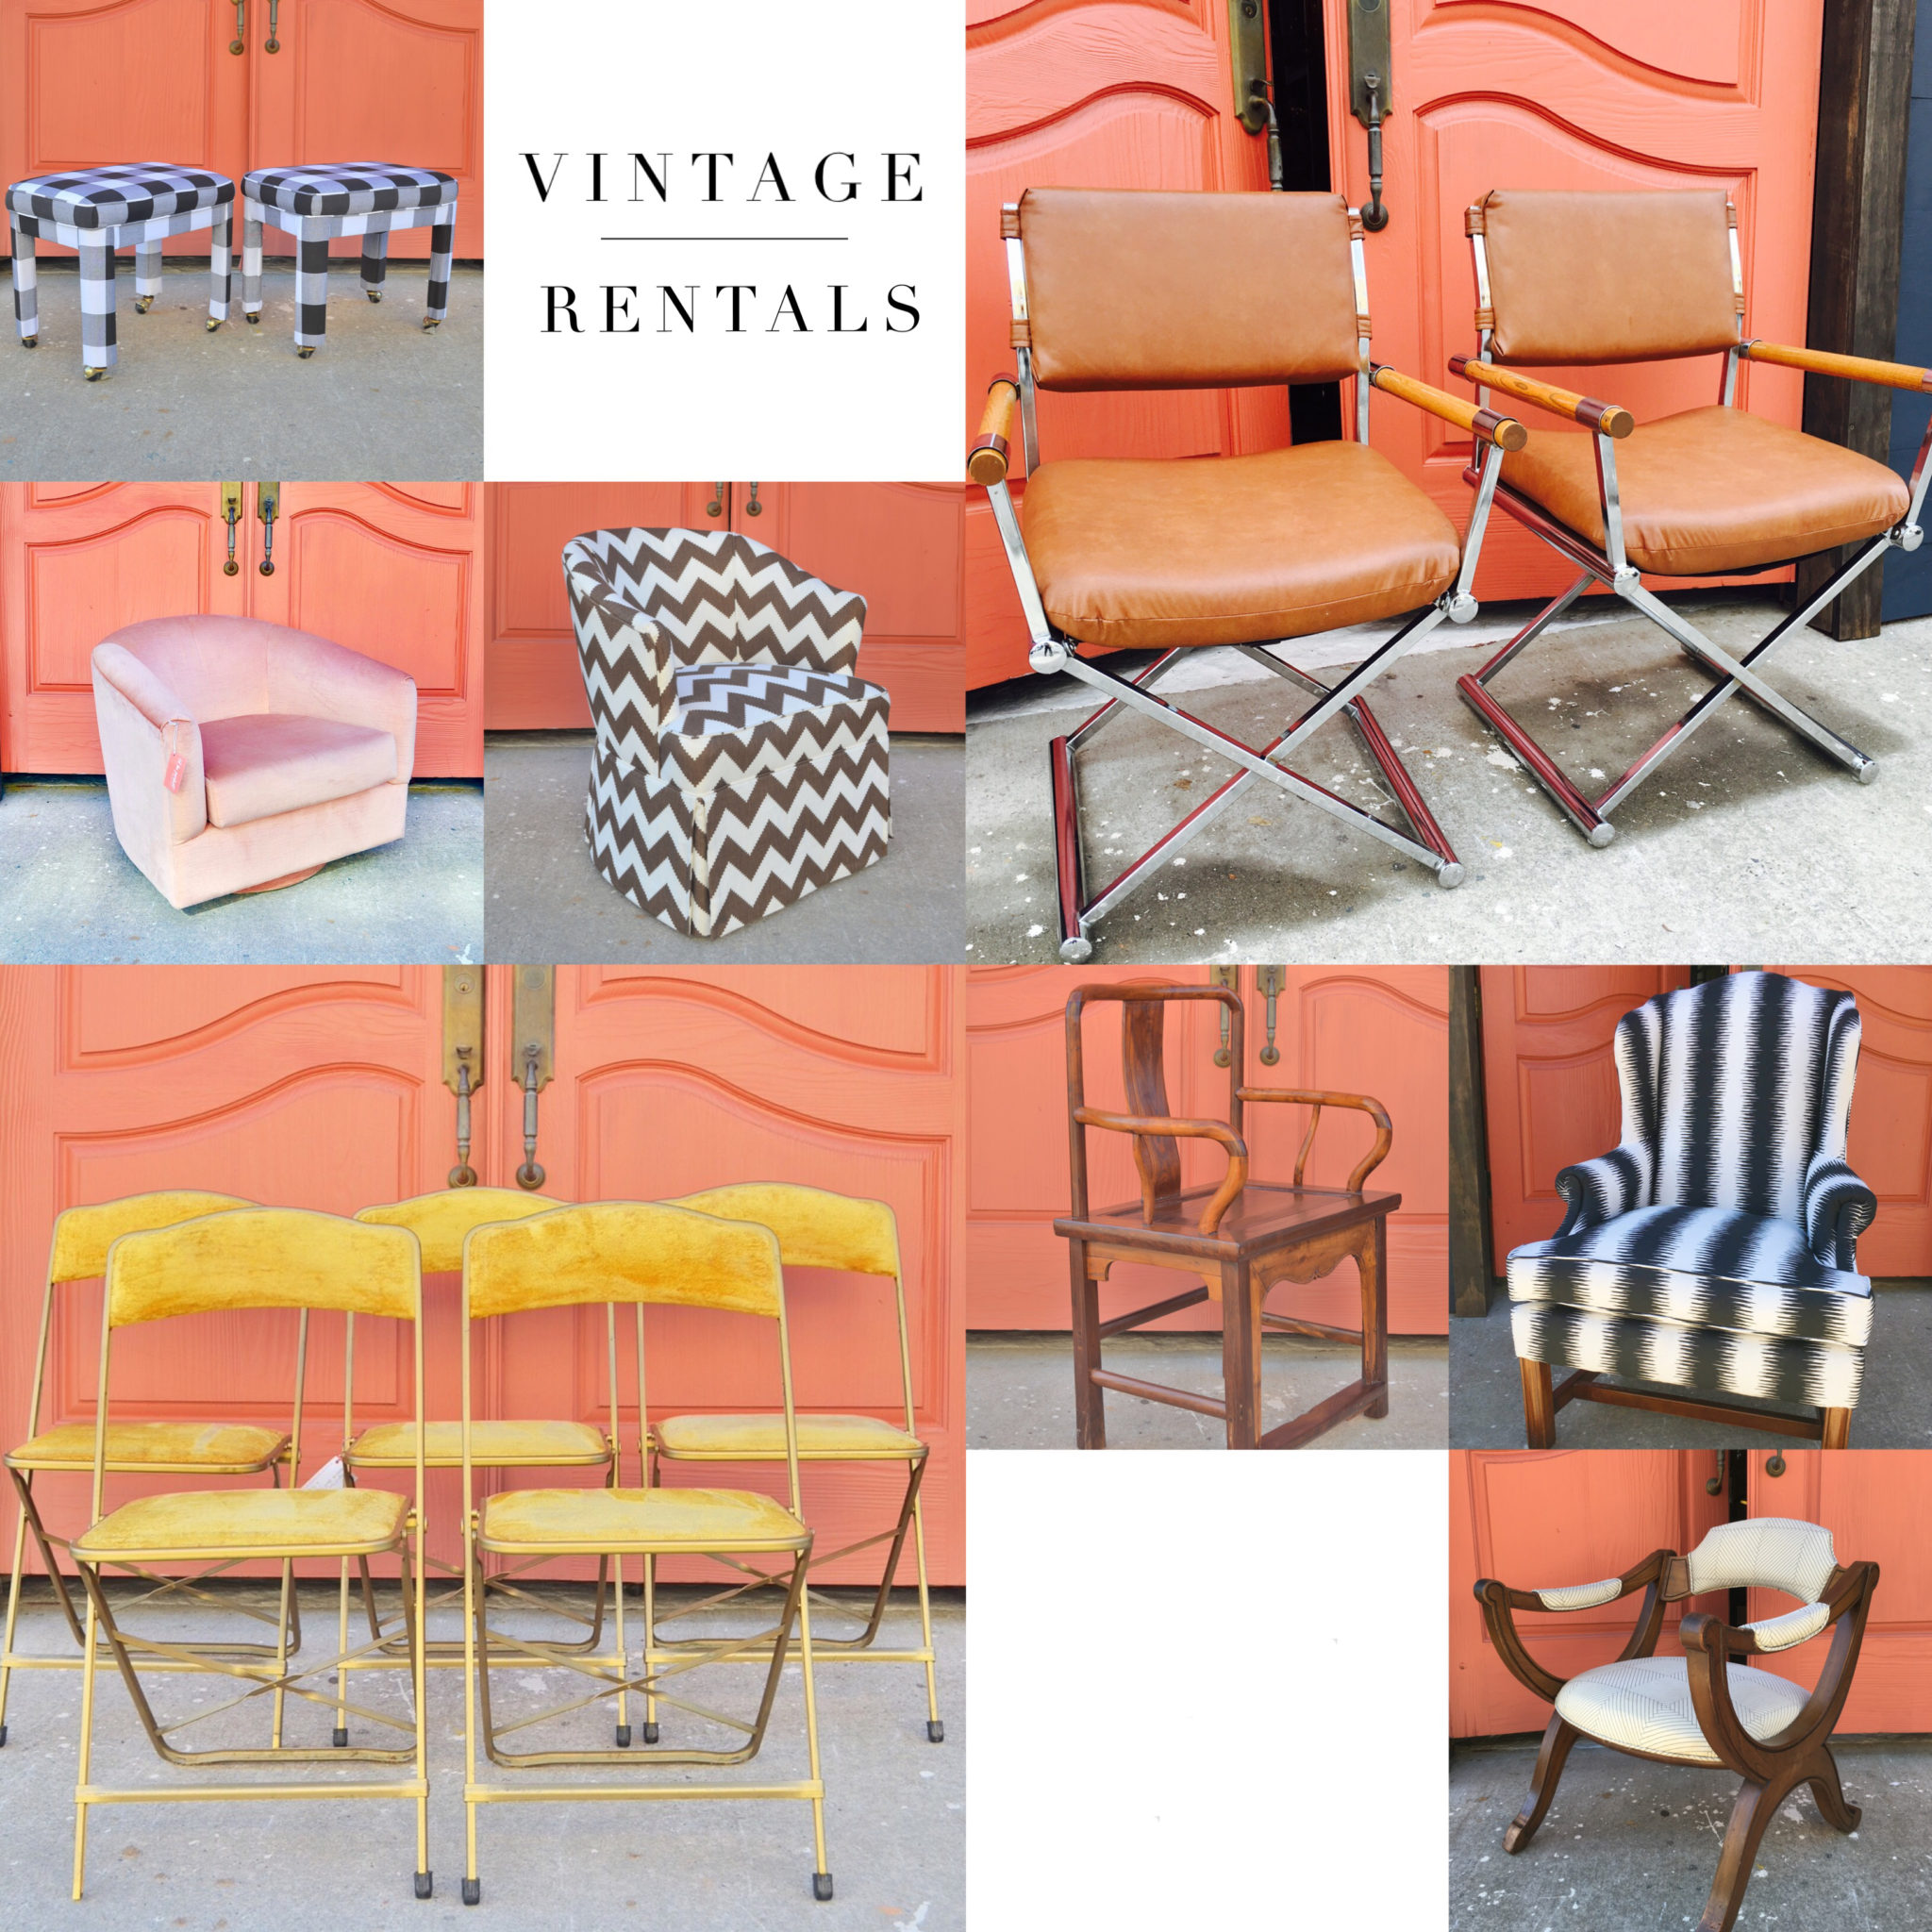 3 Tips for Styling with Vintage Pieces from Dress My Room Founder 5